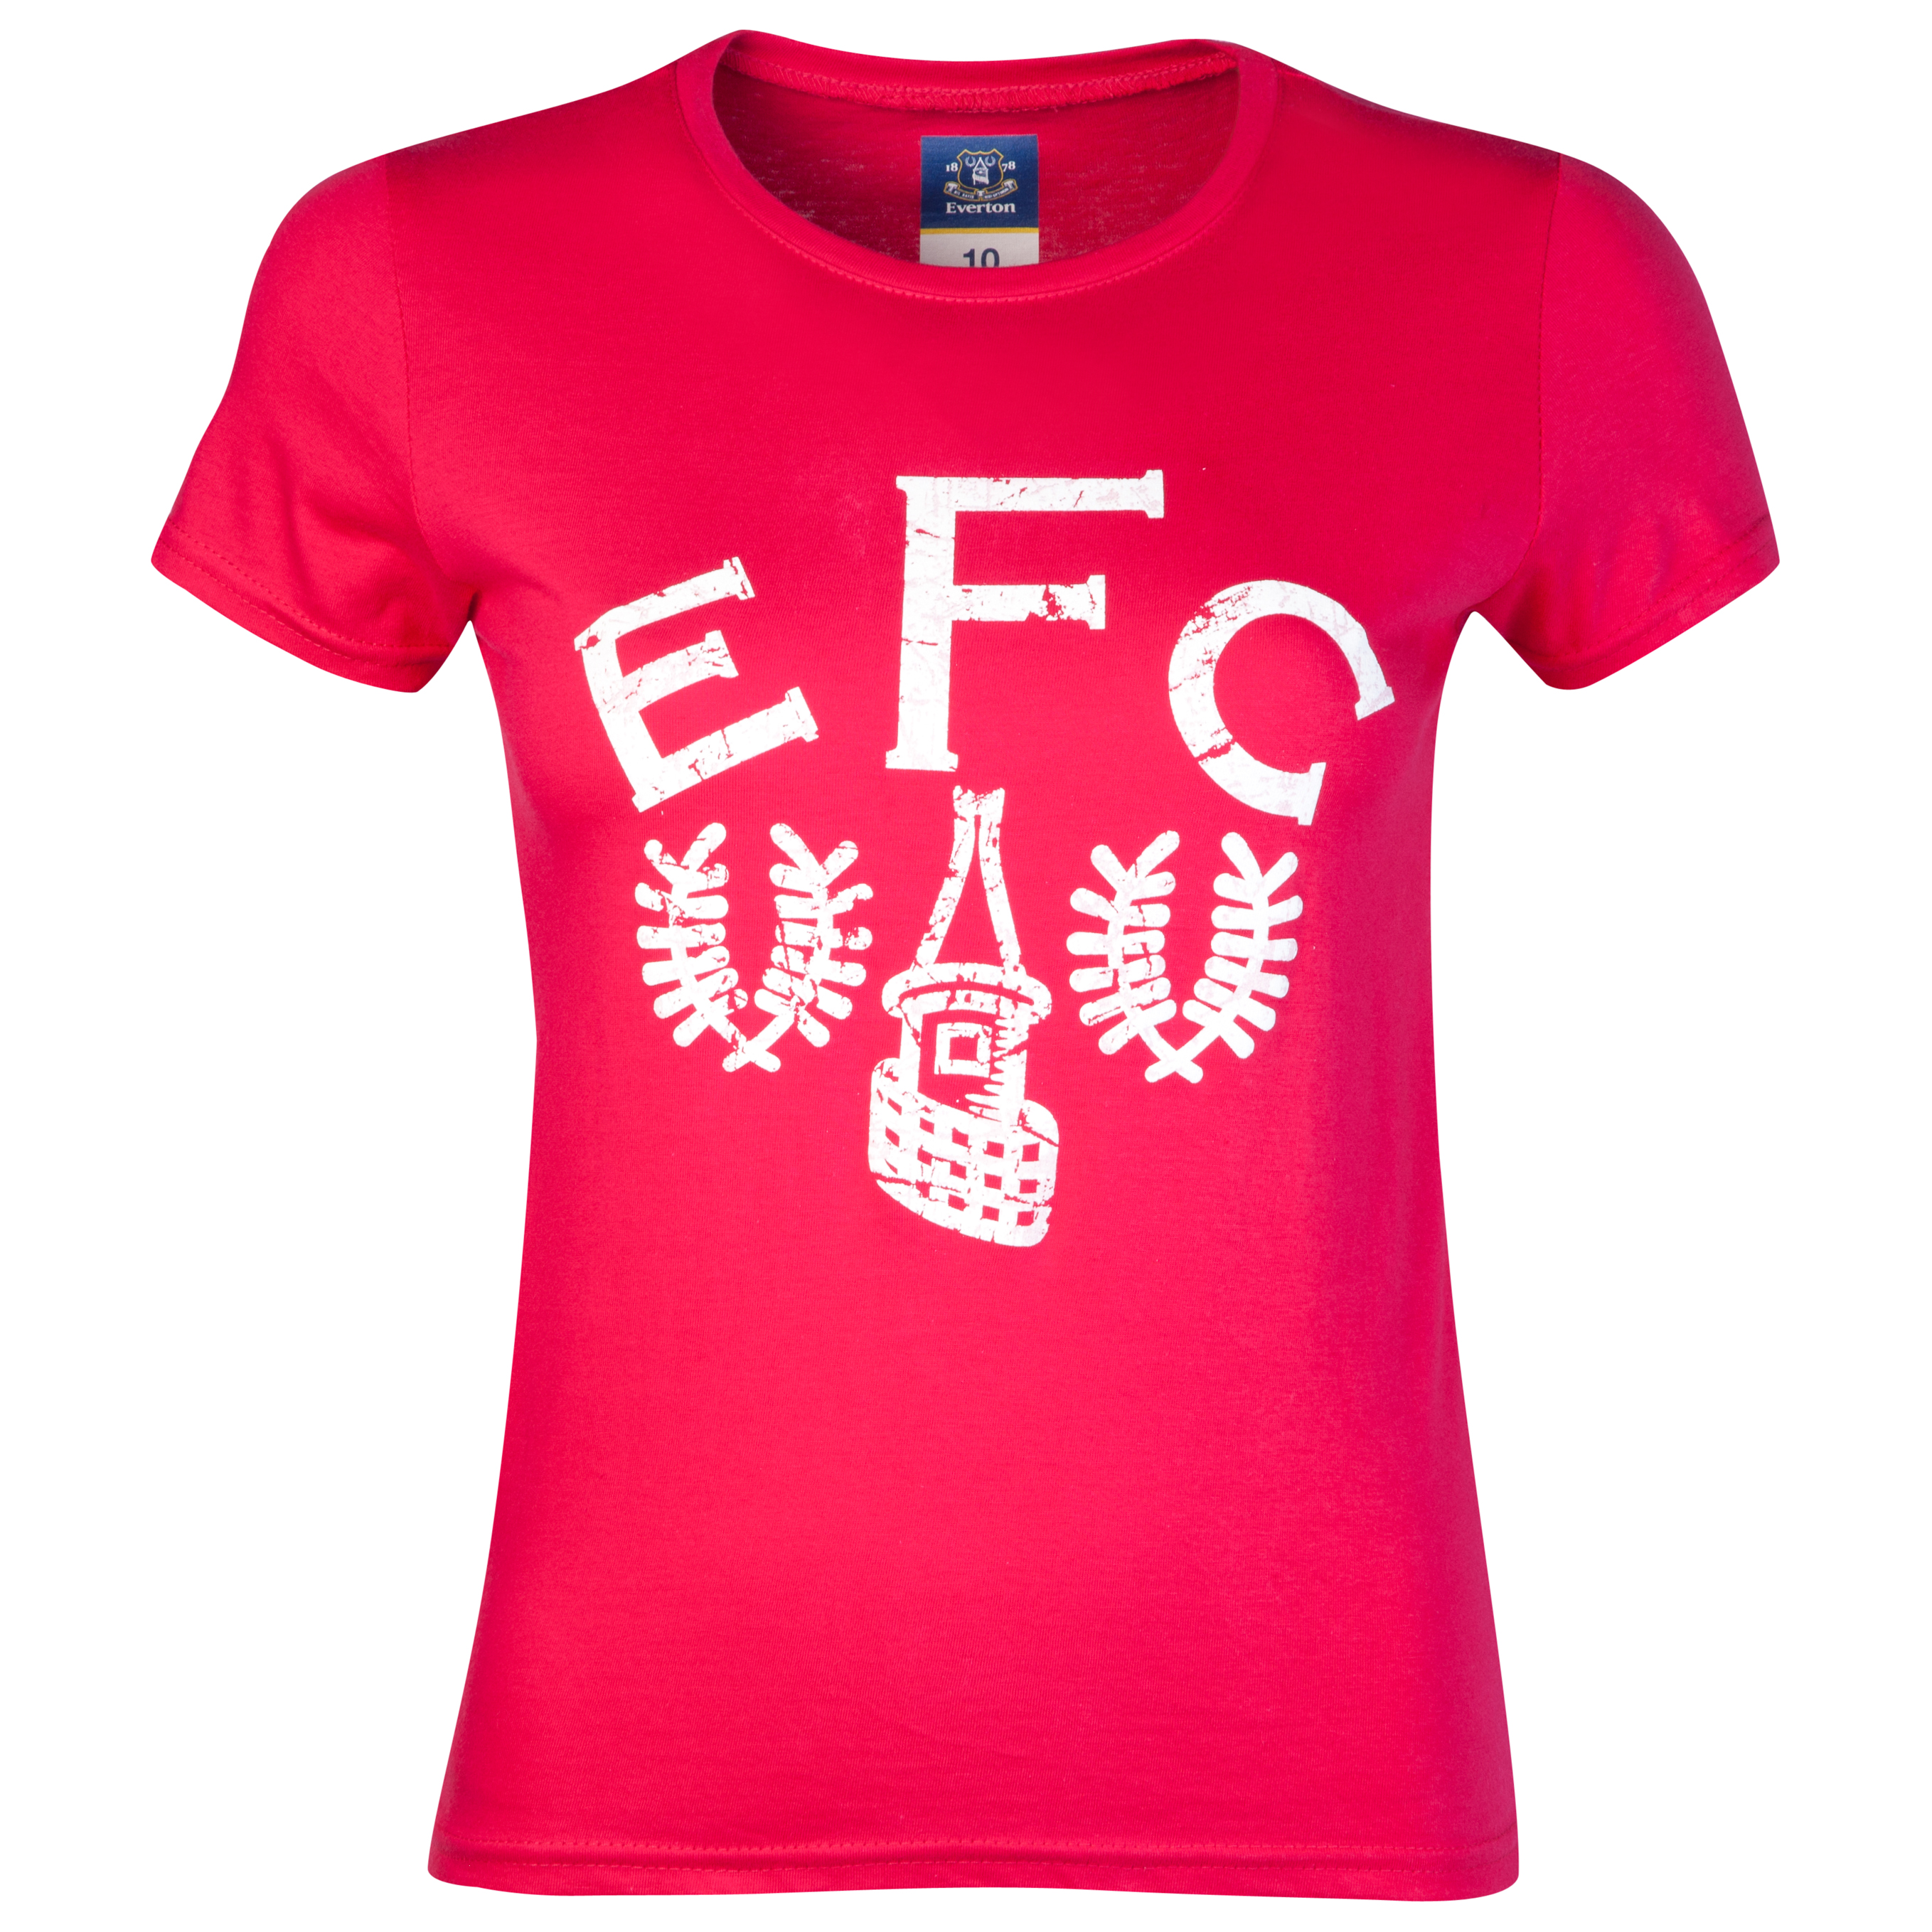 Everton 2for£20 Heritage Crest T-Shirt - Pink - Womens